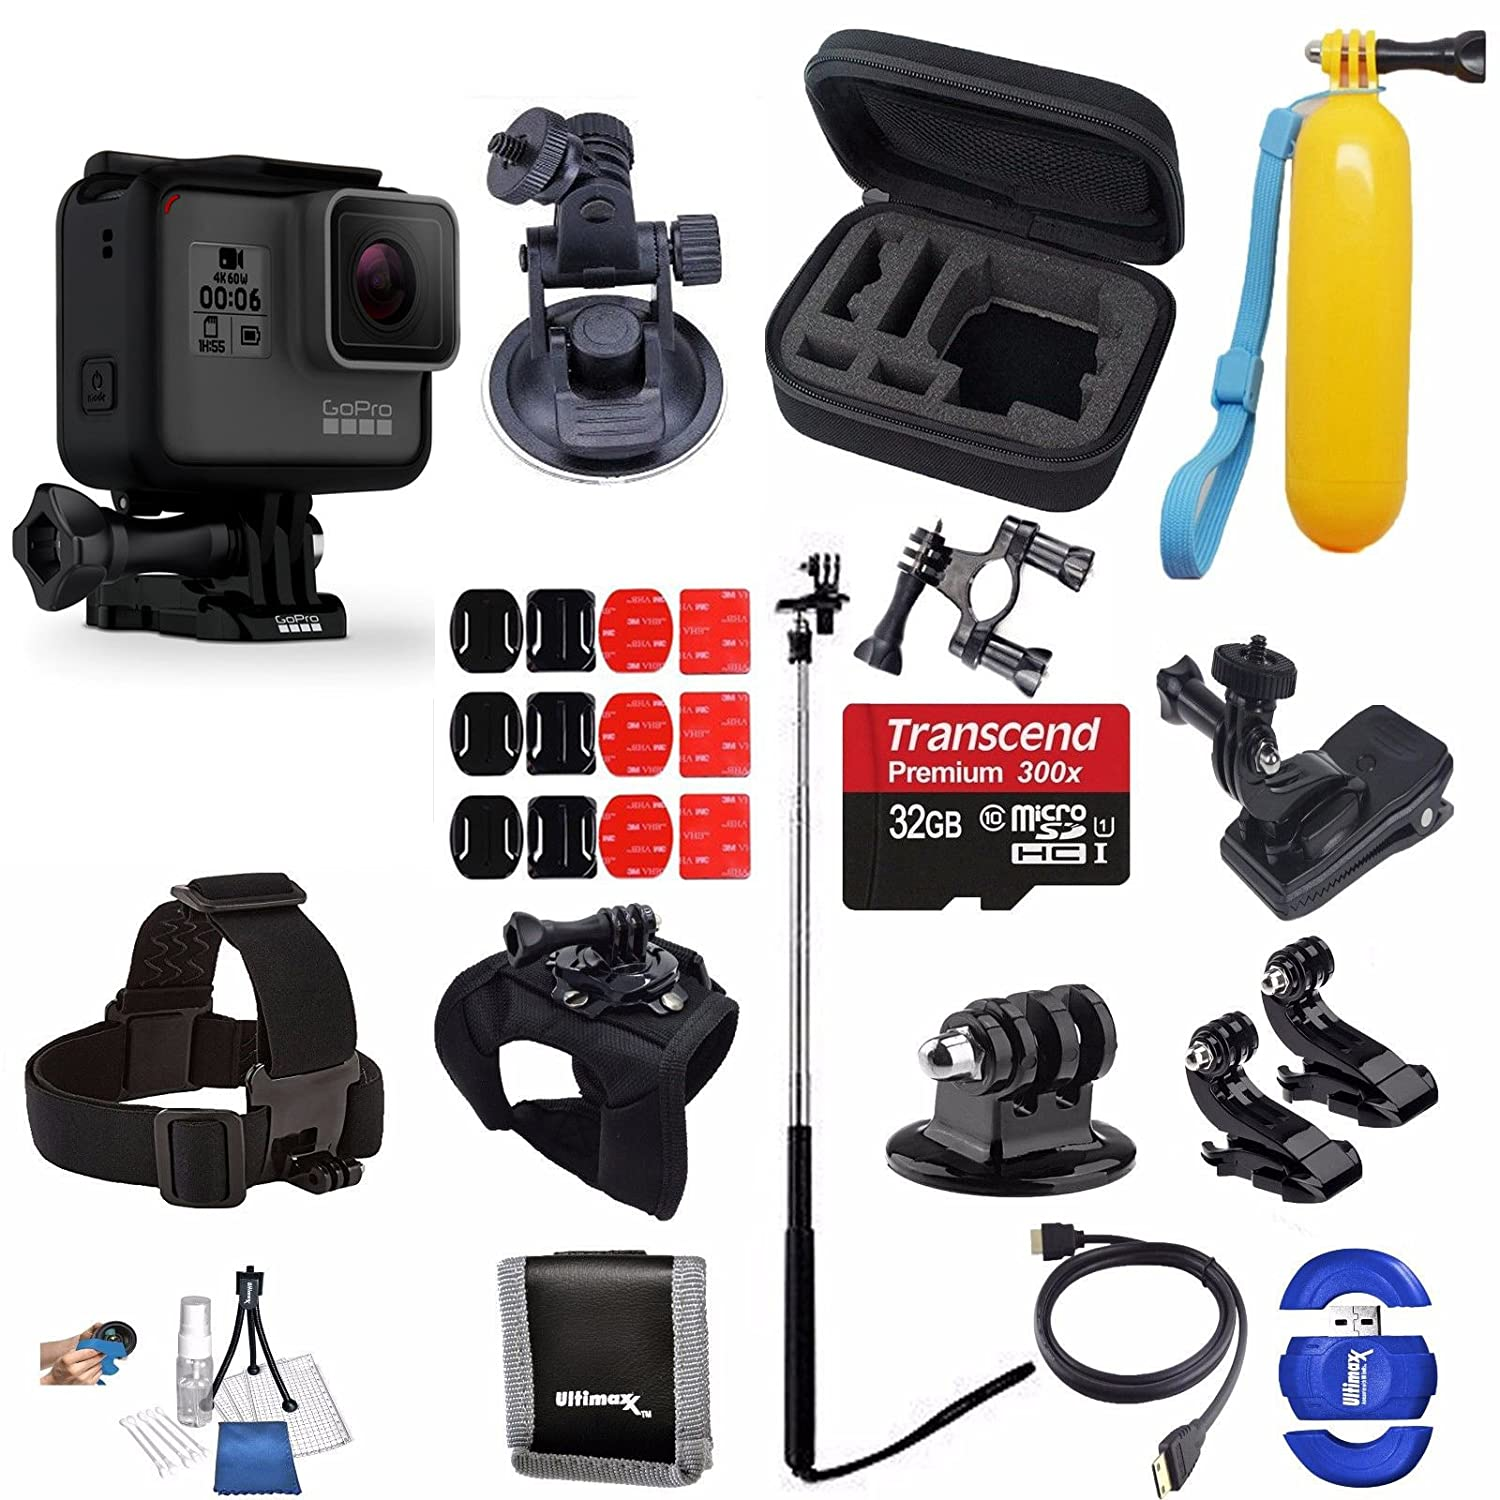 Amazon.com   GoPro HERO6 Hero 6 Black + SanDisk Ultra 32GB Micro SDHC  Memory Card + Hard Case + Much More Adventure Accessory Bundle   Camera    Photo 8a0670a1c